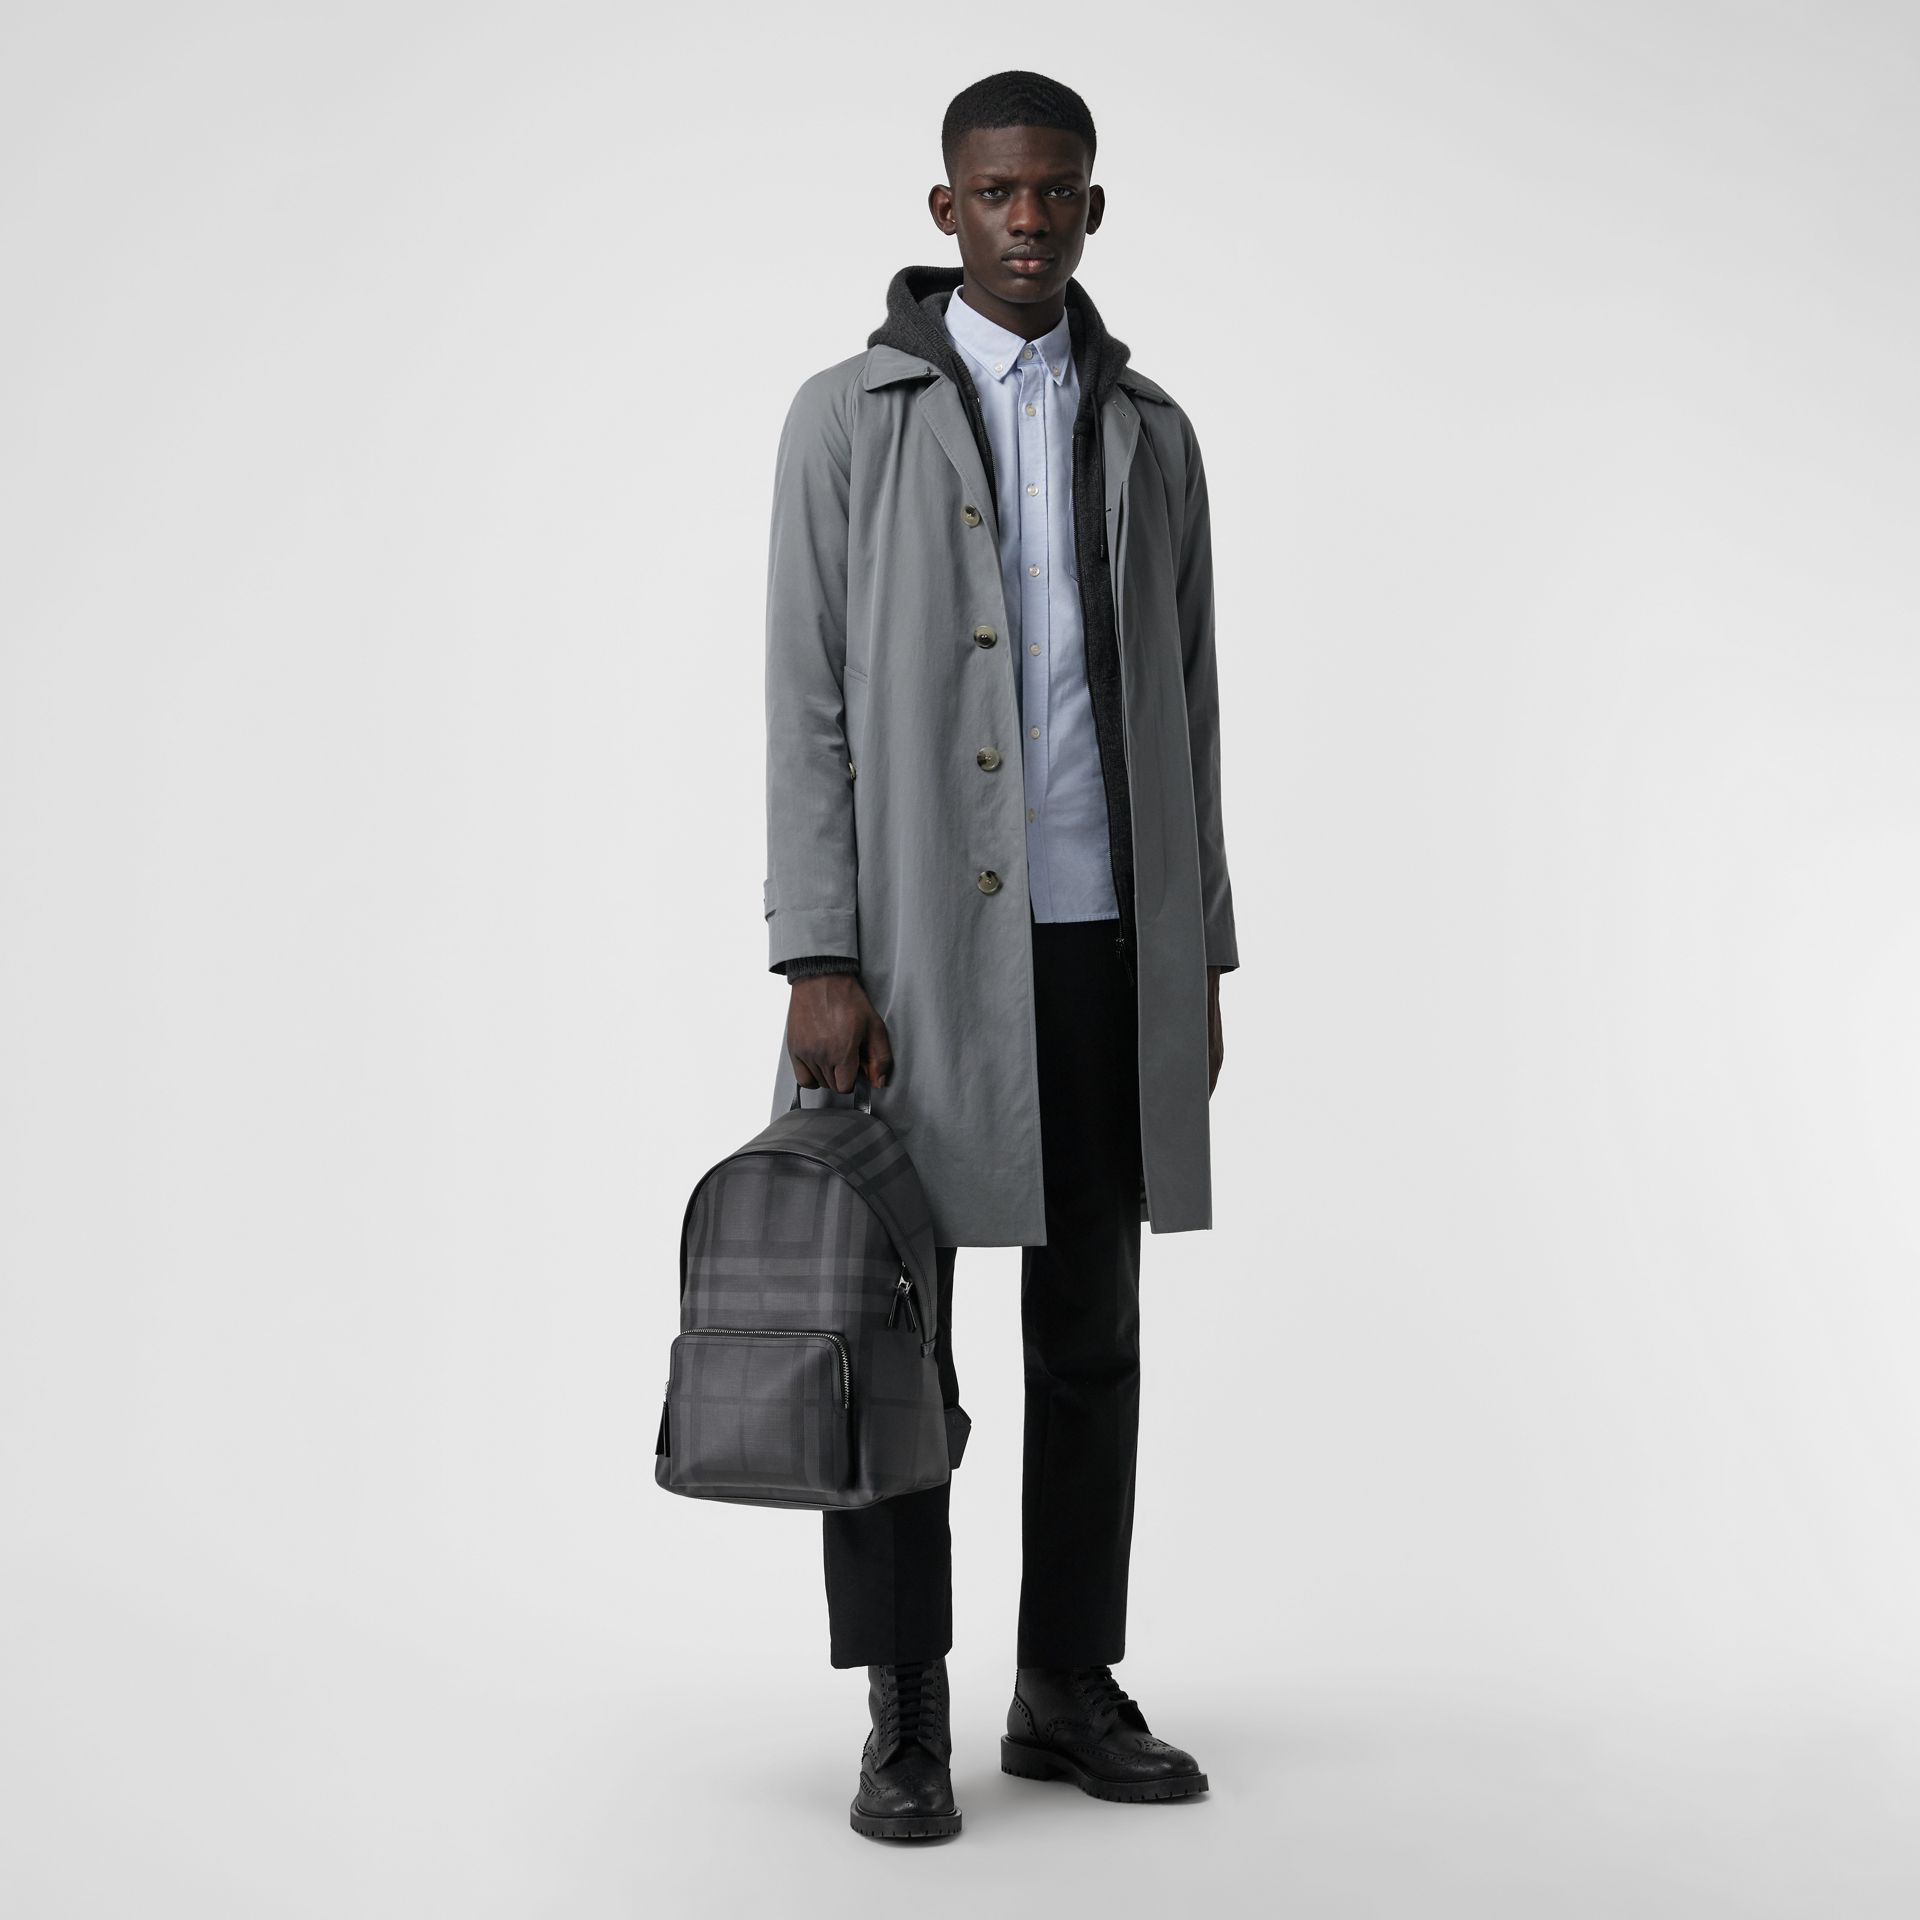 Sac à dos à motif London check avec éléments en cuir (Anthracite/noir) - Homme | Burberry Canada - photo de la galerie 3